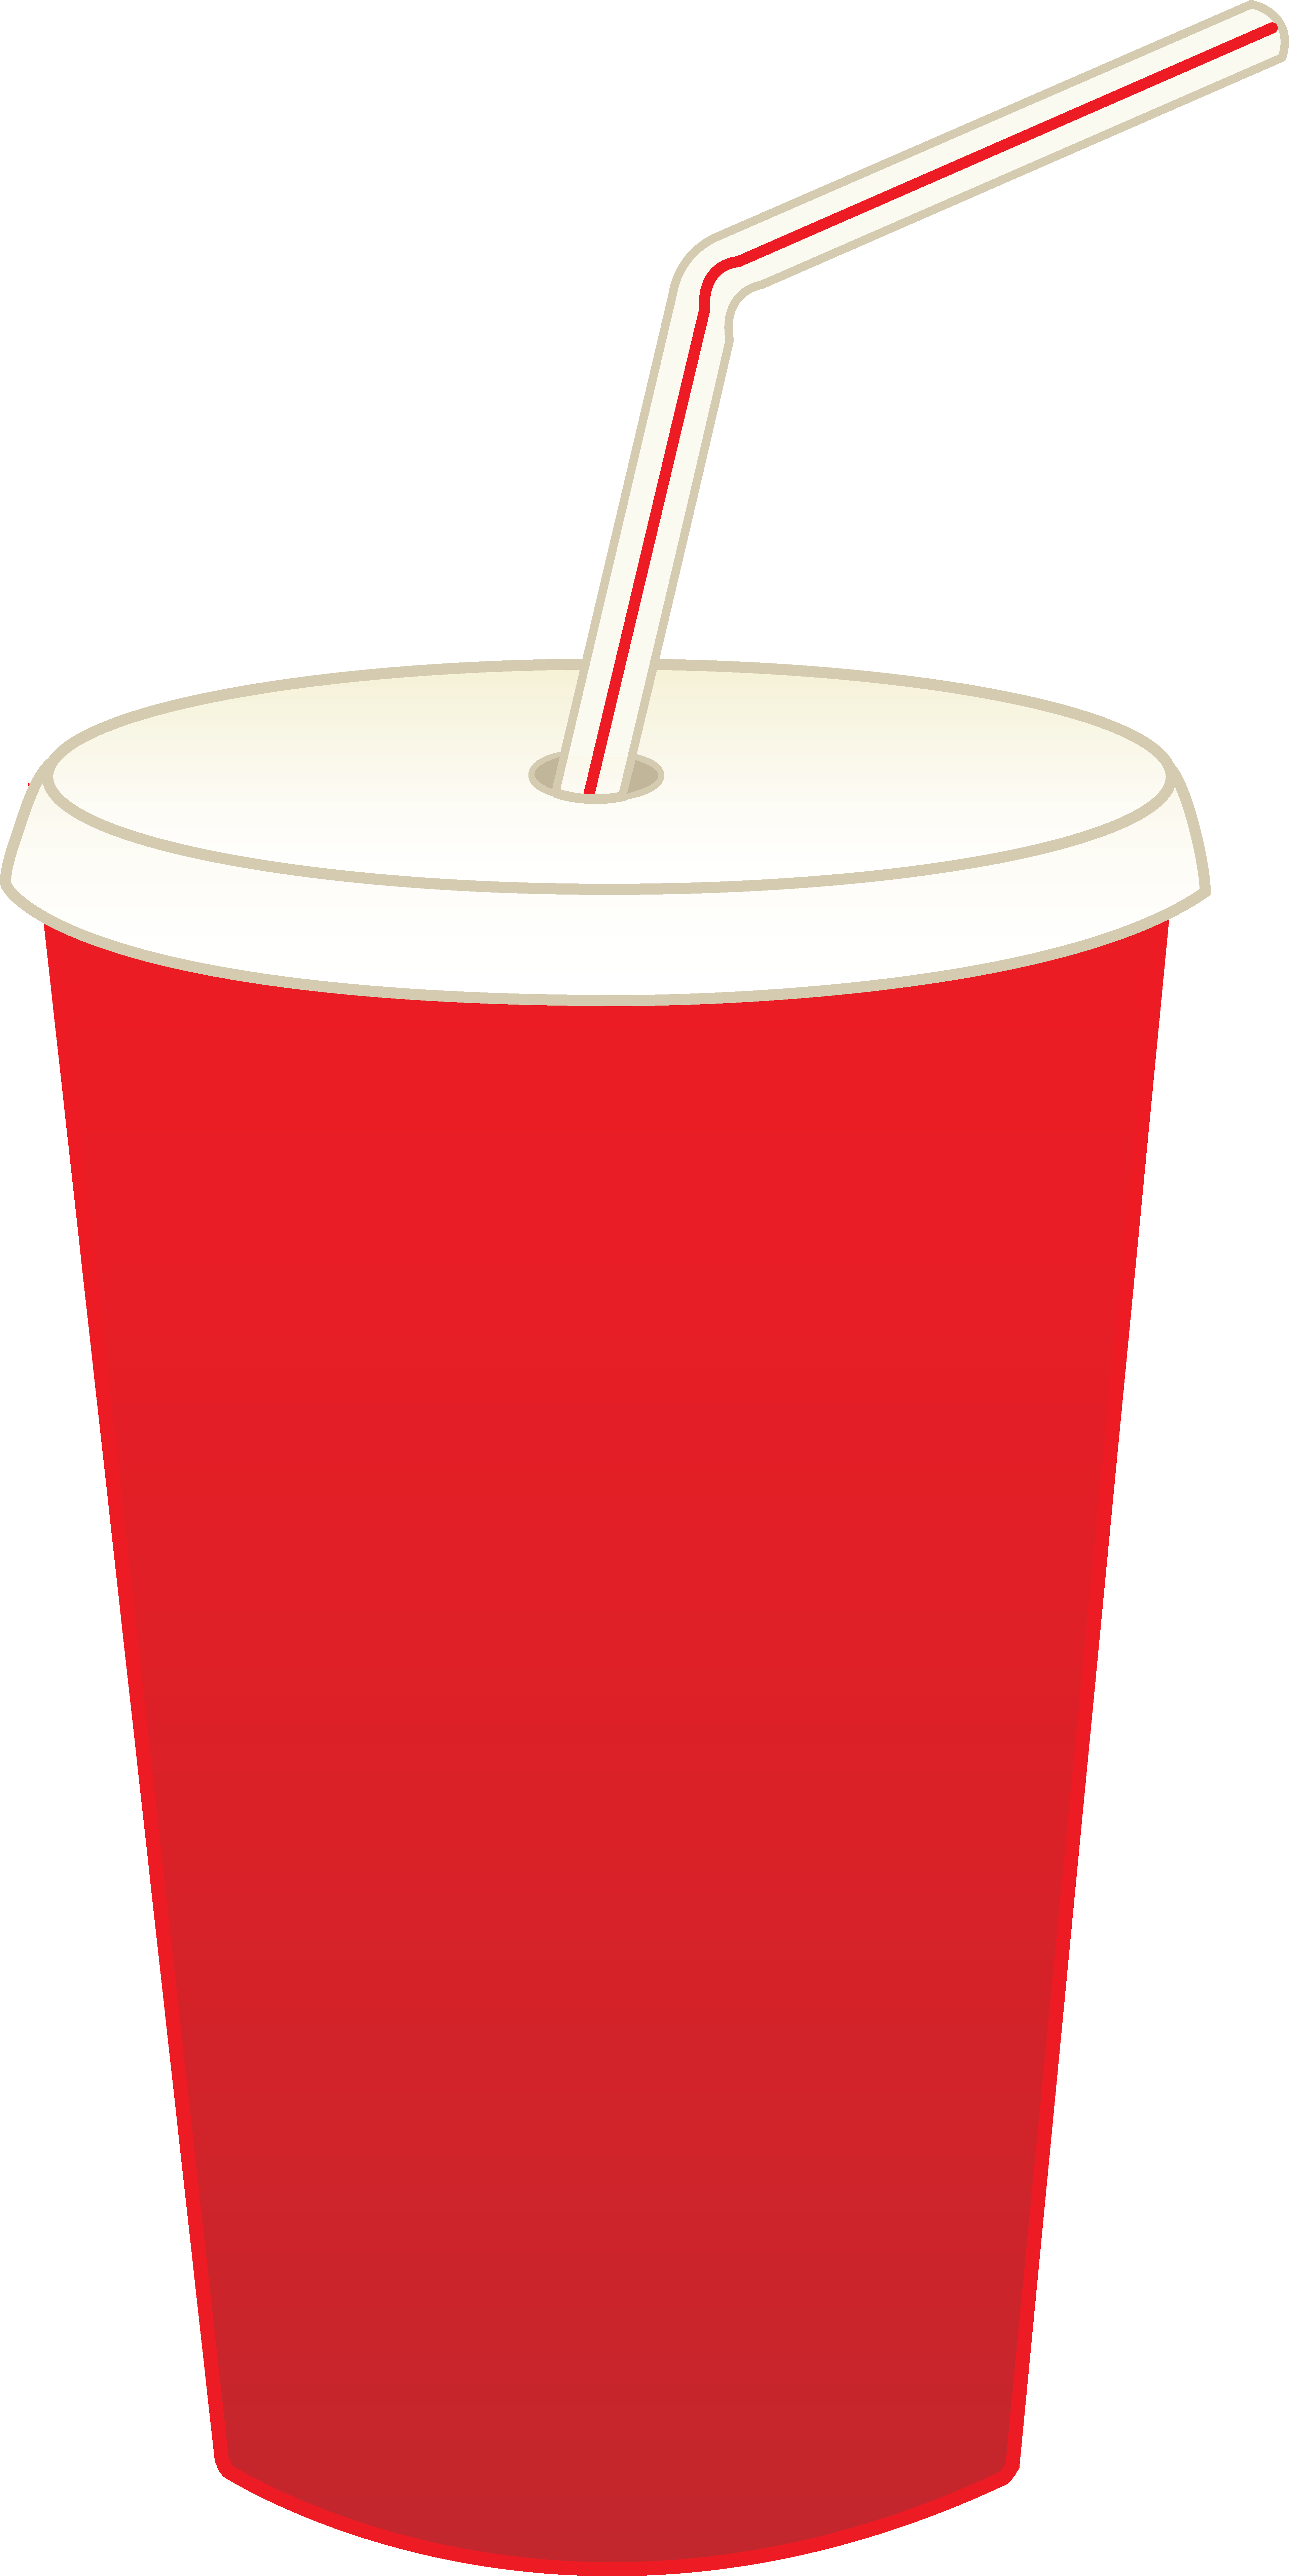 Soda pictures clipart png transparent library Free Drink Cup Cliparts, Download Free Clip Art, Free Clip Art on ... png transparent library